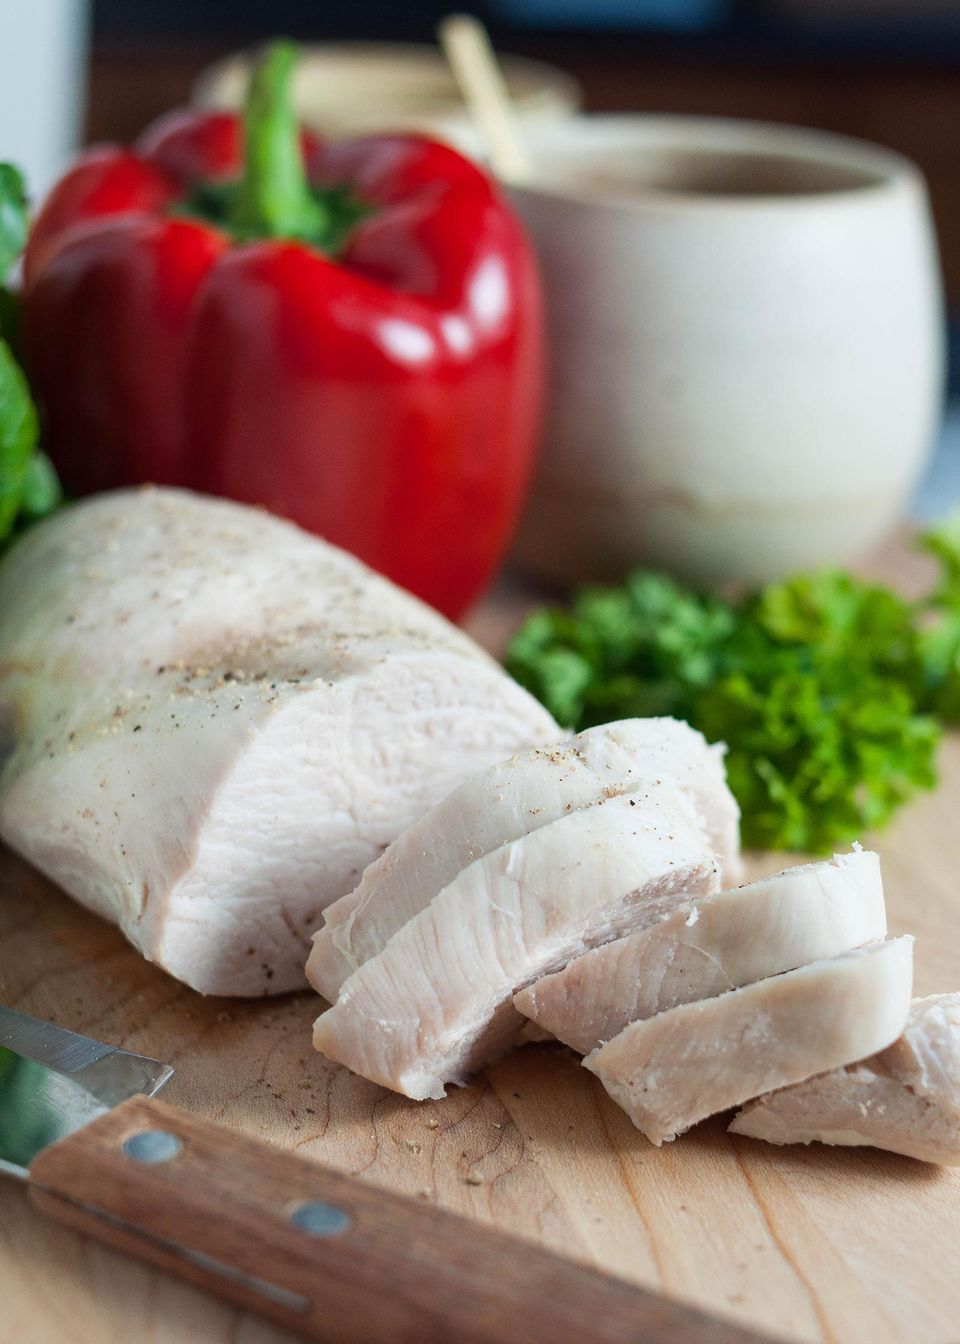 How To Quickly Cook Chicken on the Stovetop